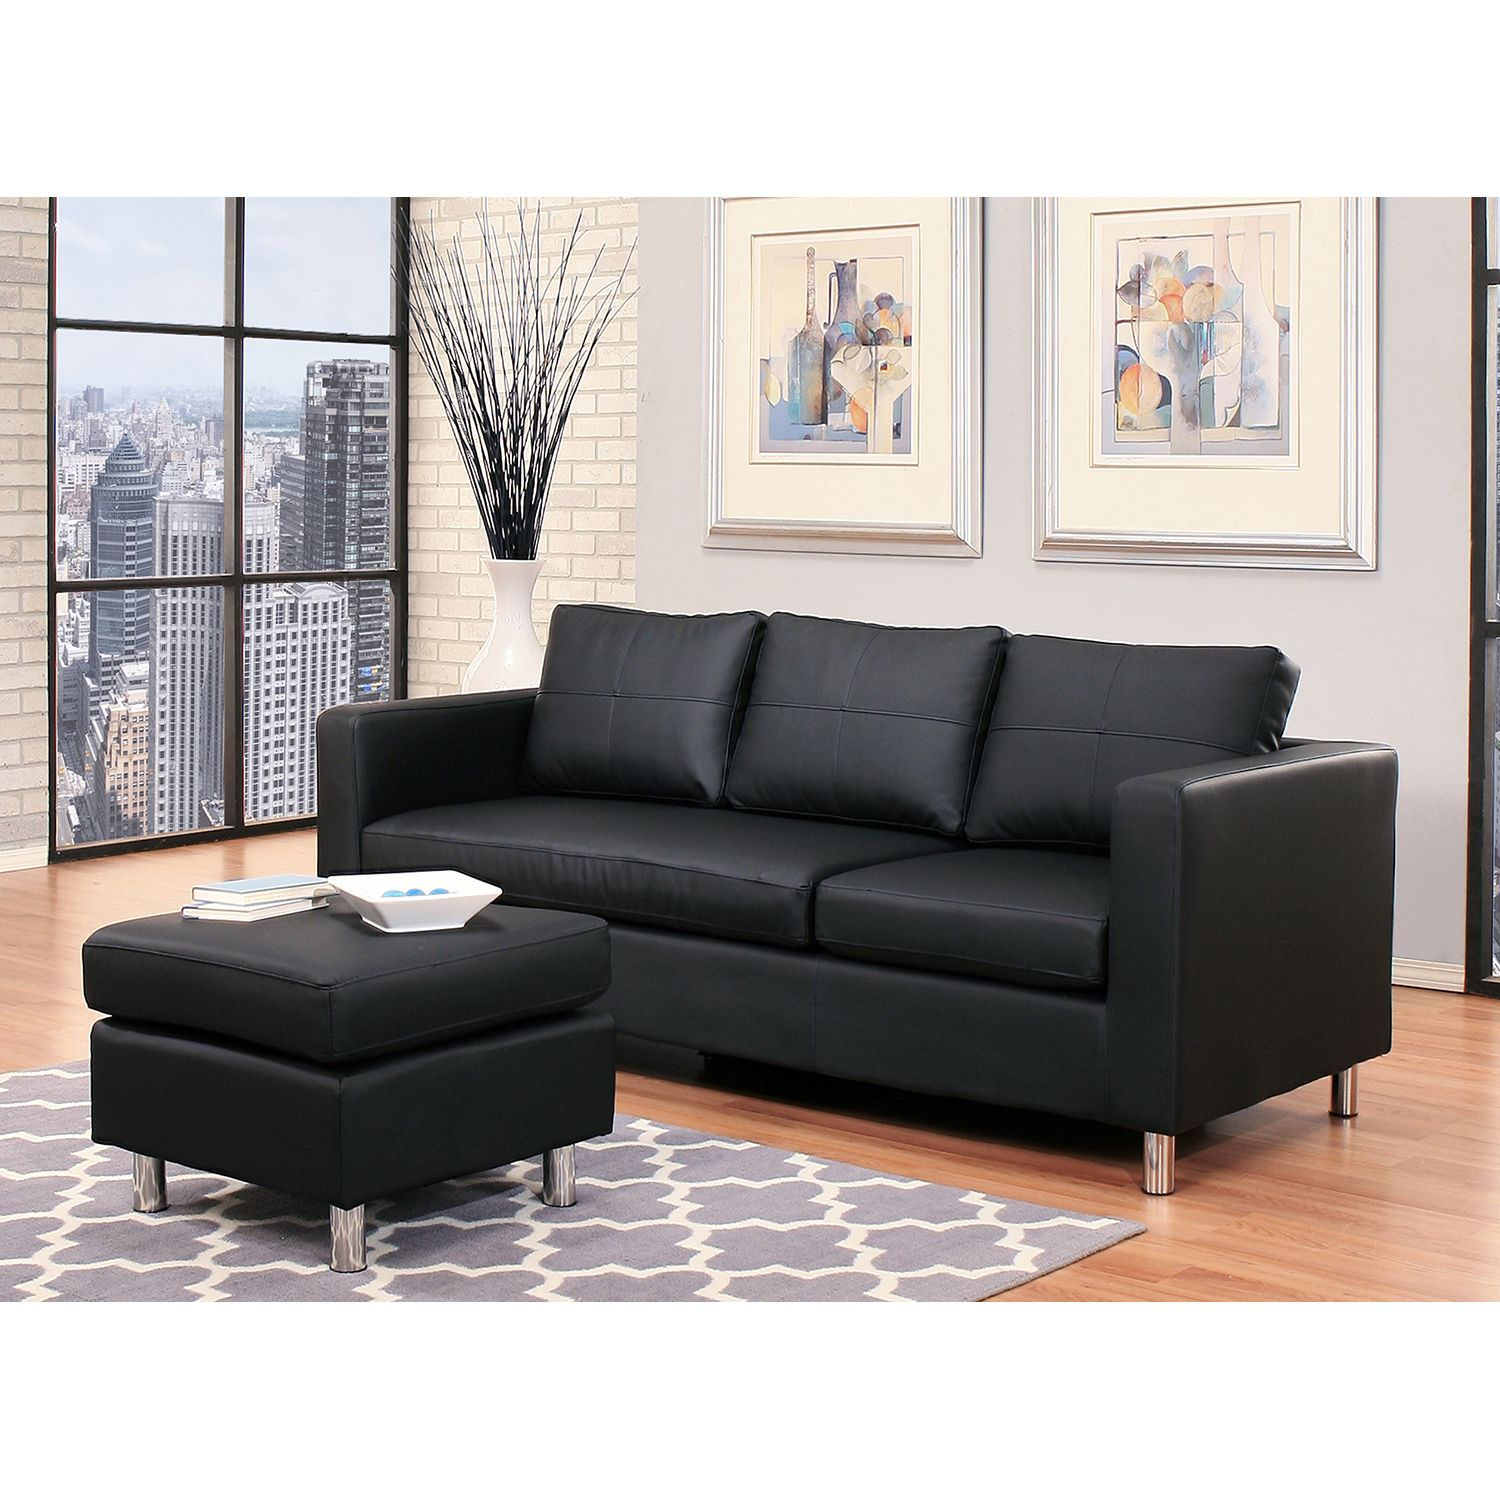 leather sectional sofa reversible chaise lounge ottoman